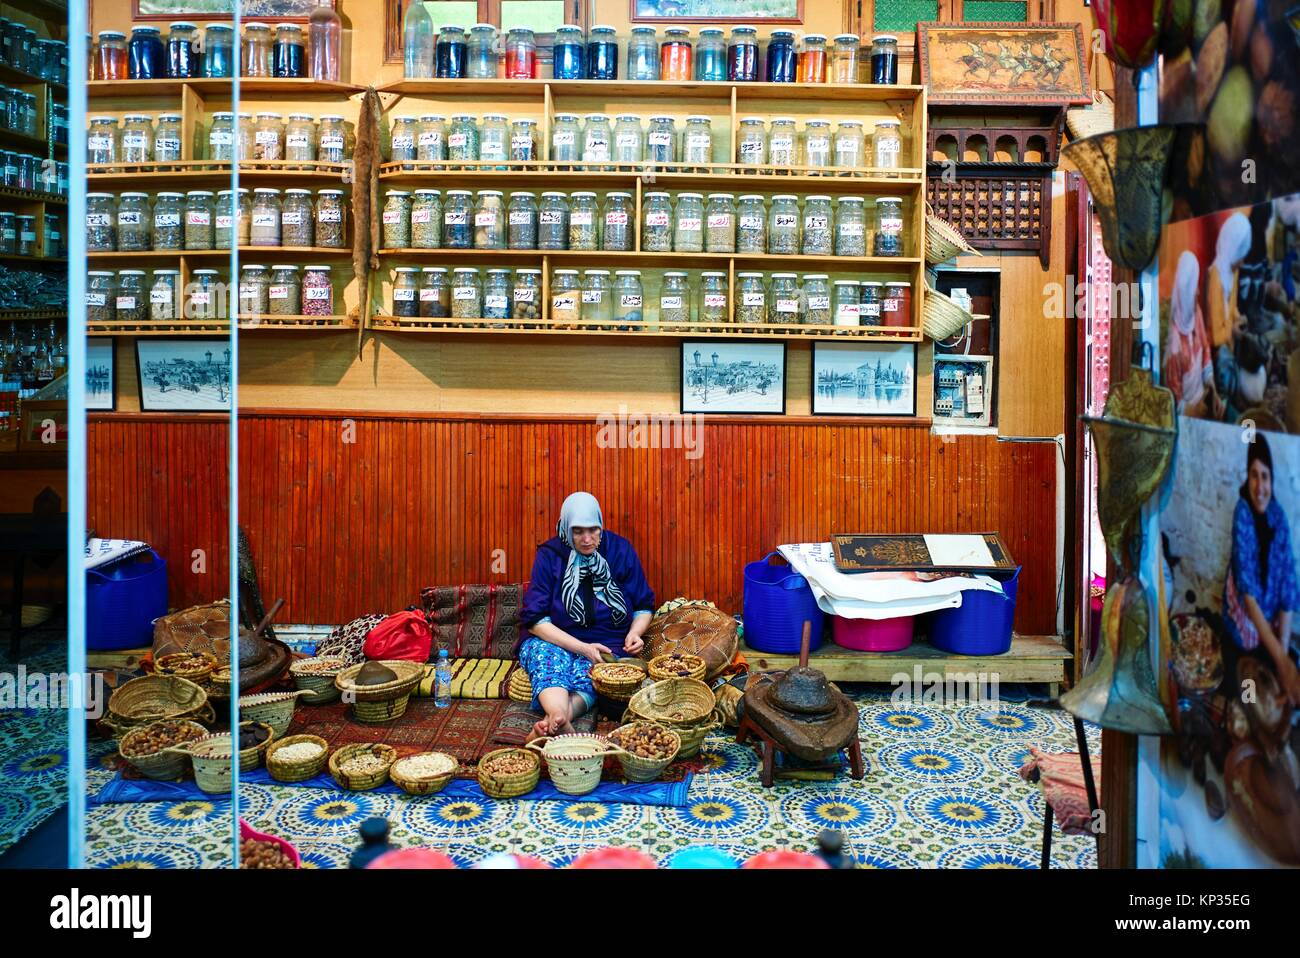 Selling spices in a shop in the medina of Fez, Morocco - Stock Image